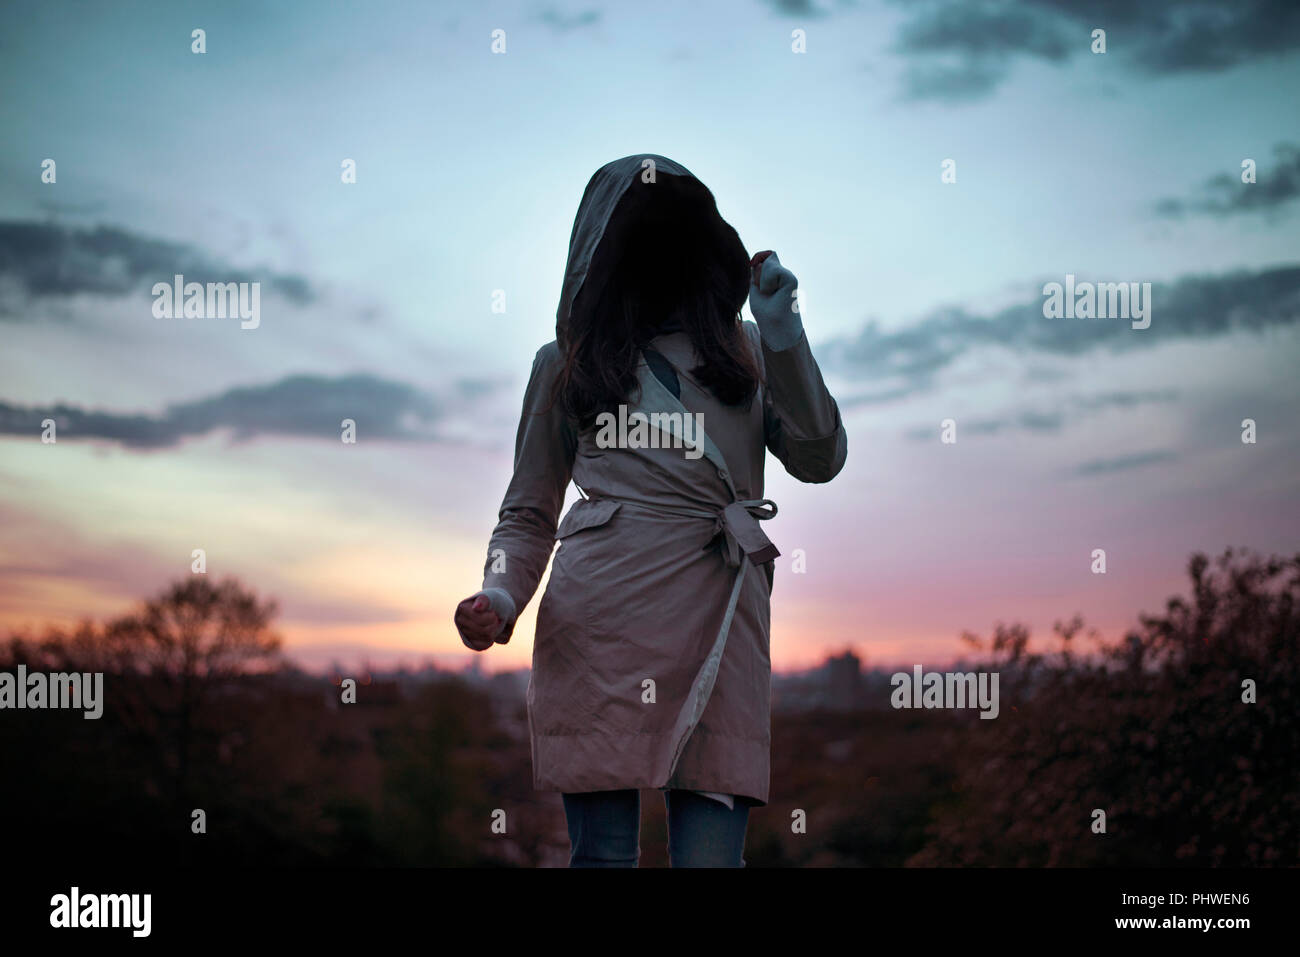 Unidentifiable woman wearing hooded trench coat dancing in the sunset. Mysterious, creative - travel / lifestyle concept. London, UK - Stock Image